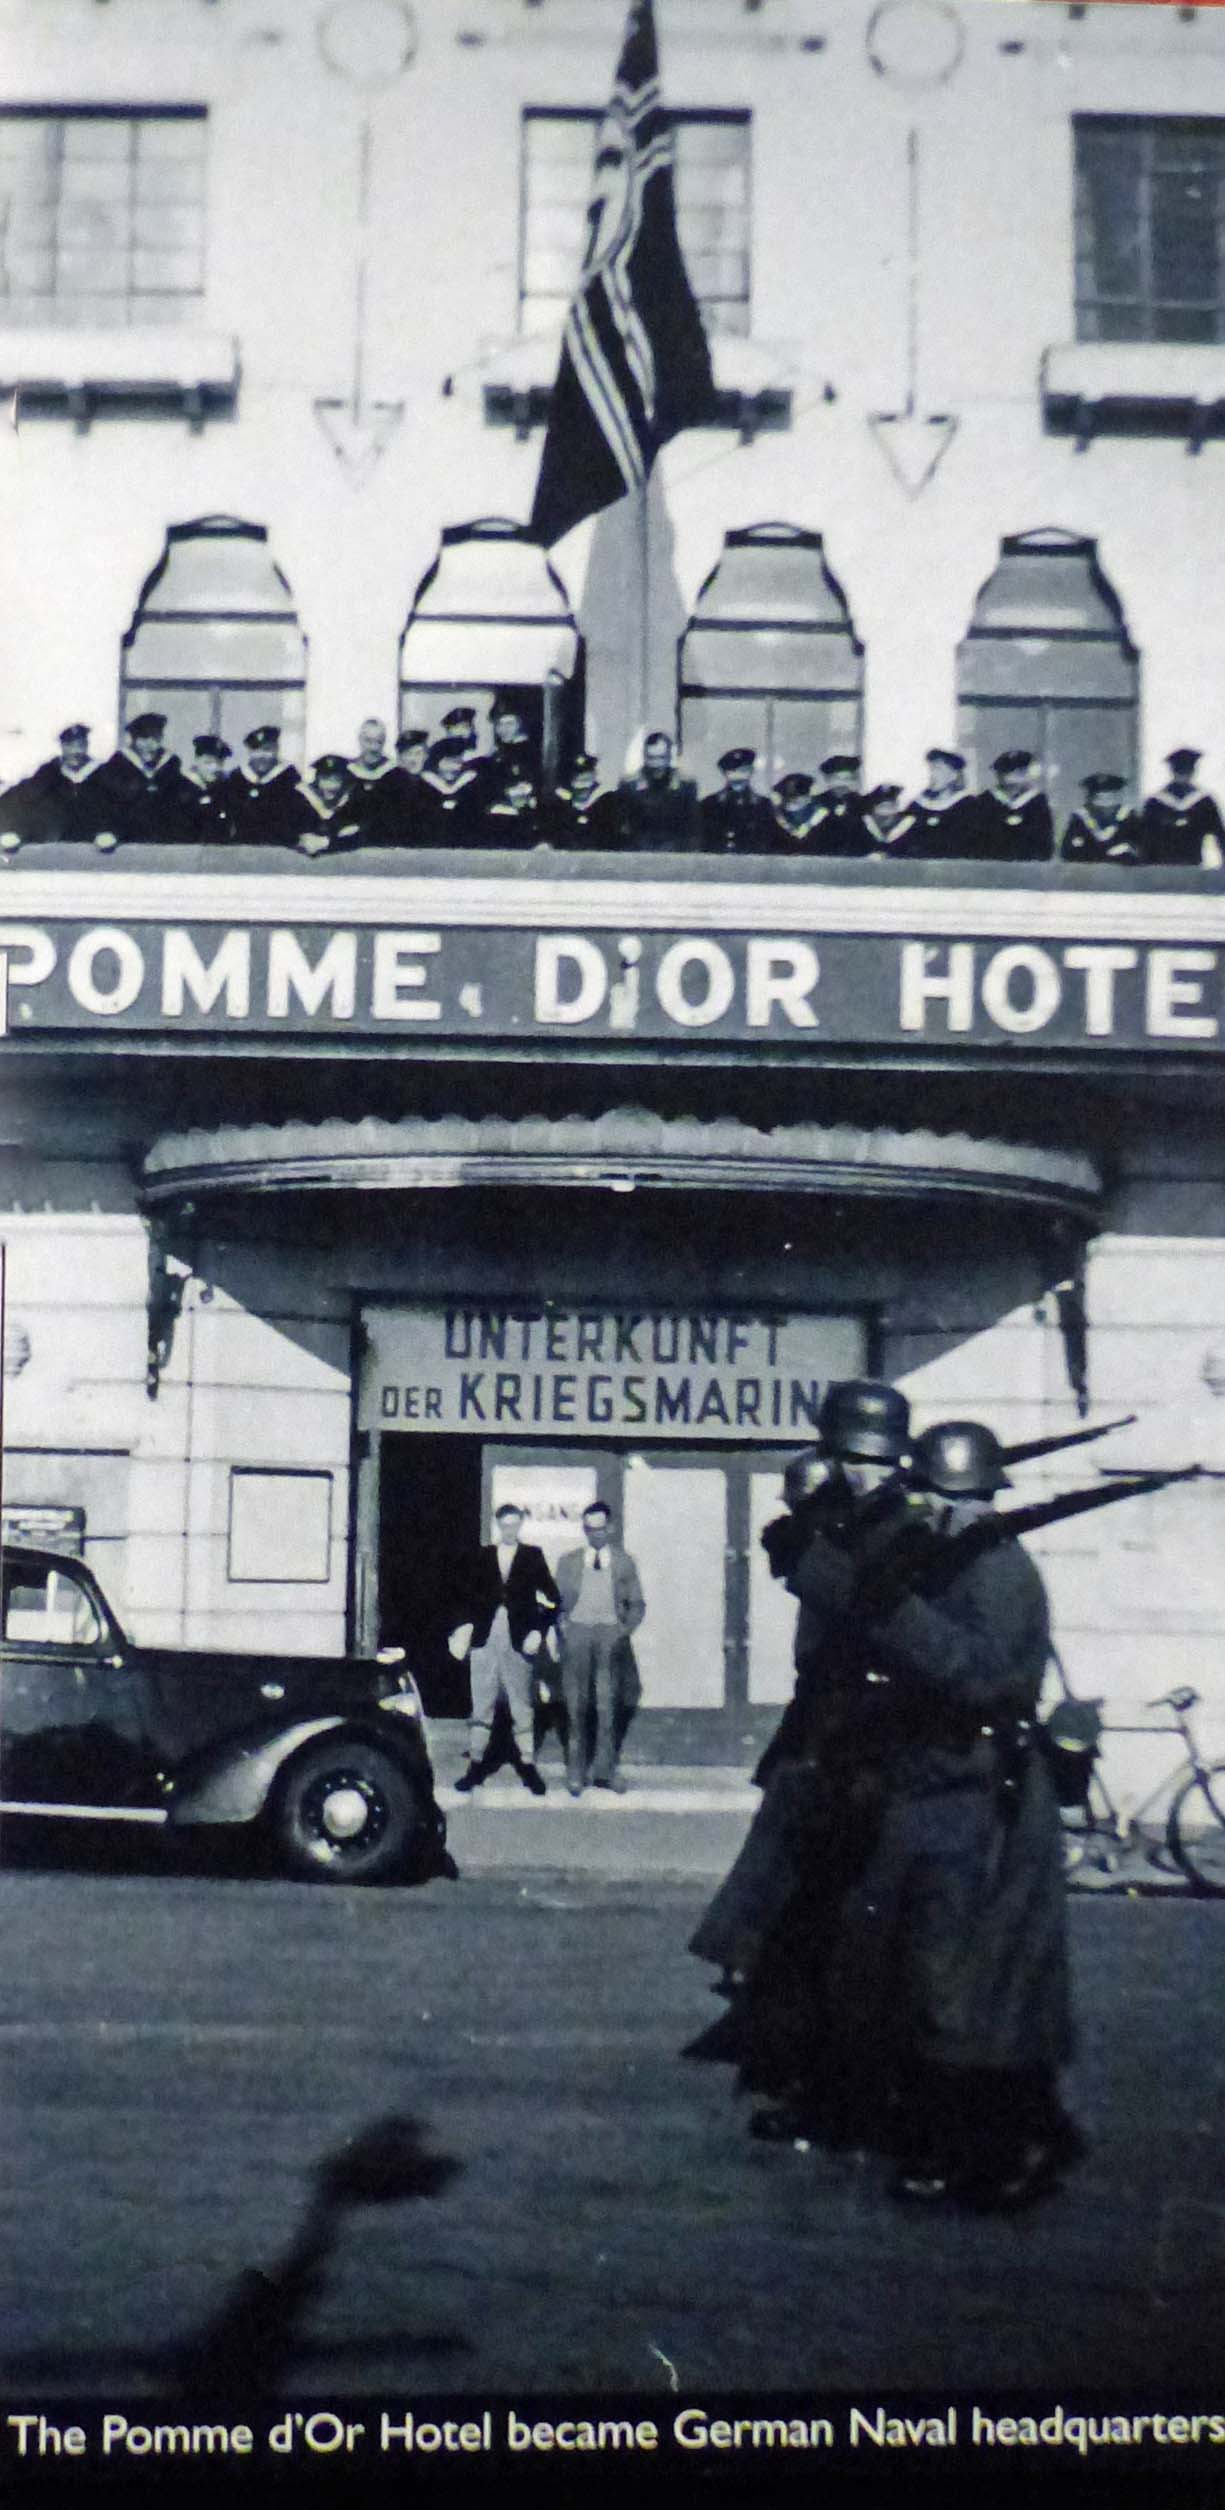 Black and white old photo of a hotel with flags